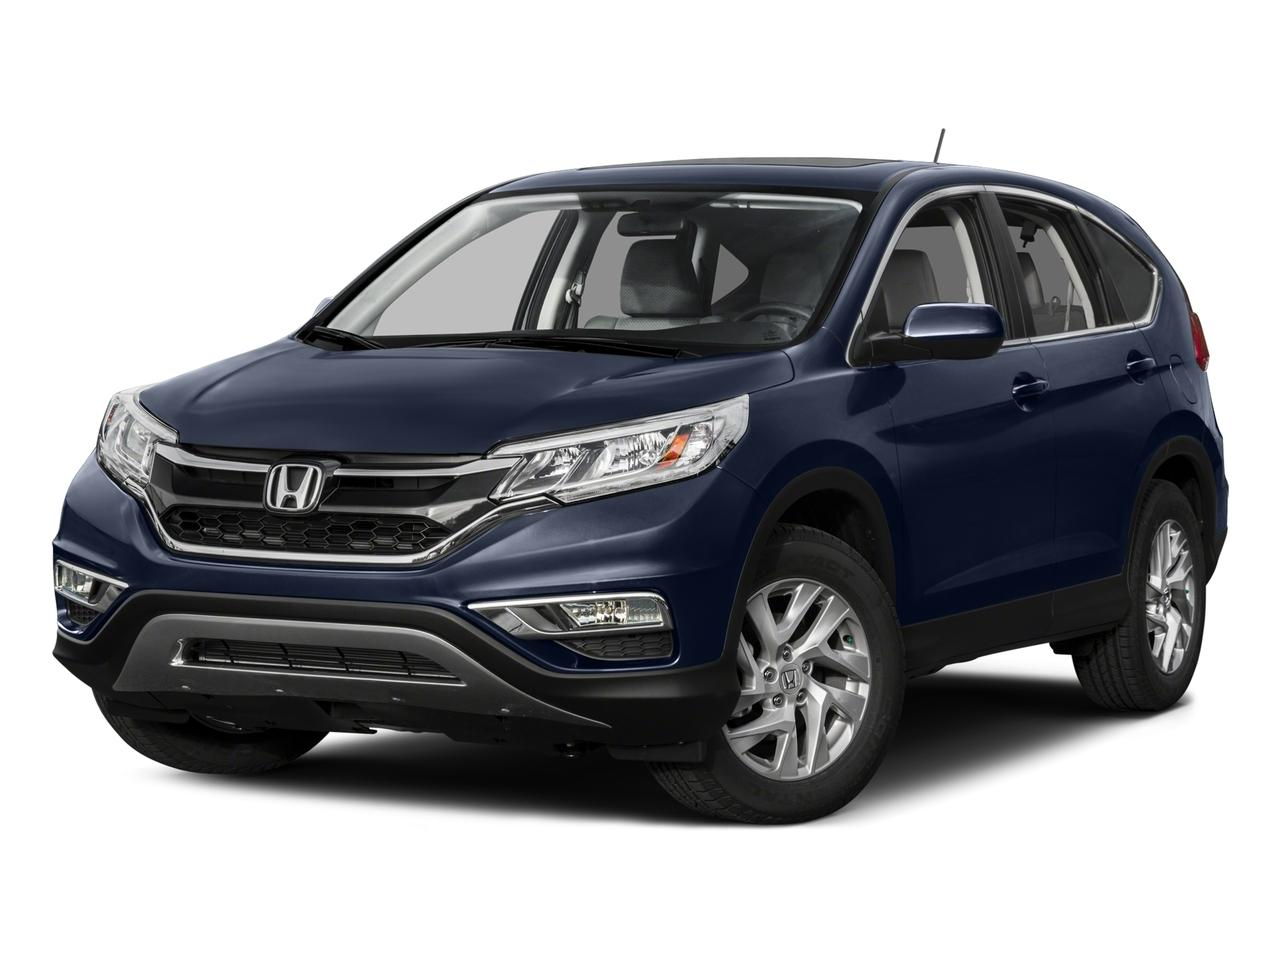 2015 Honda CR-V Vehicle Photo in Manassas, VA 20109